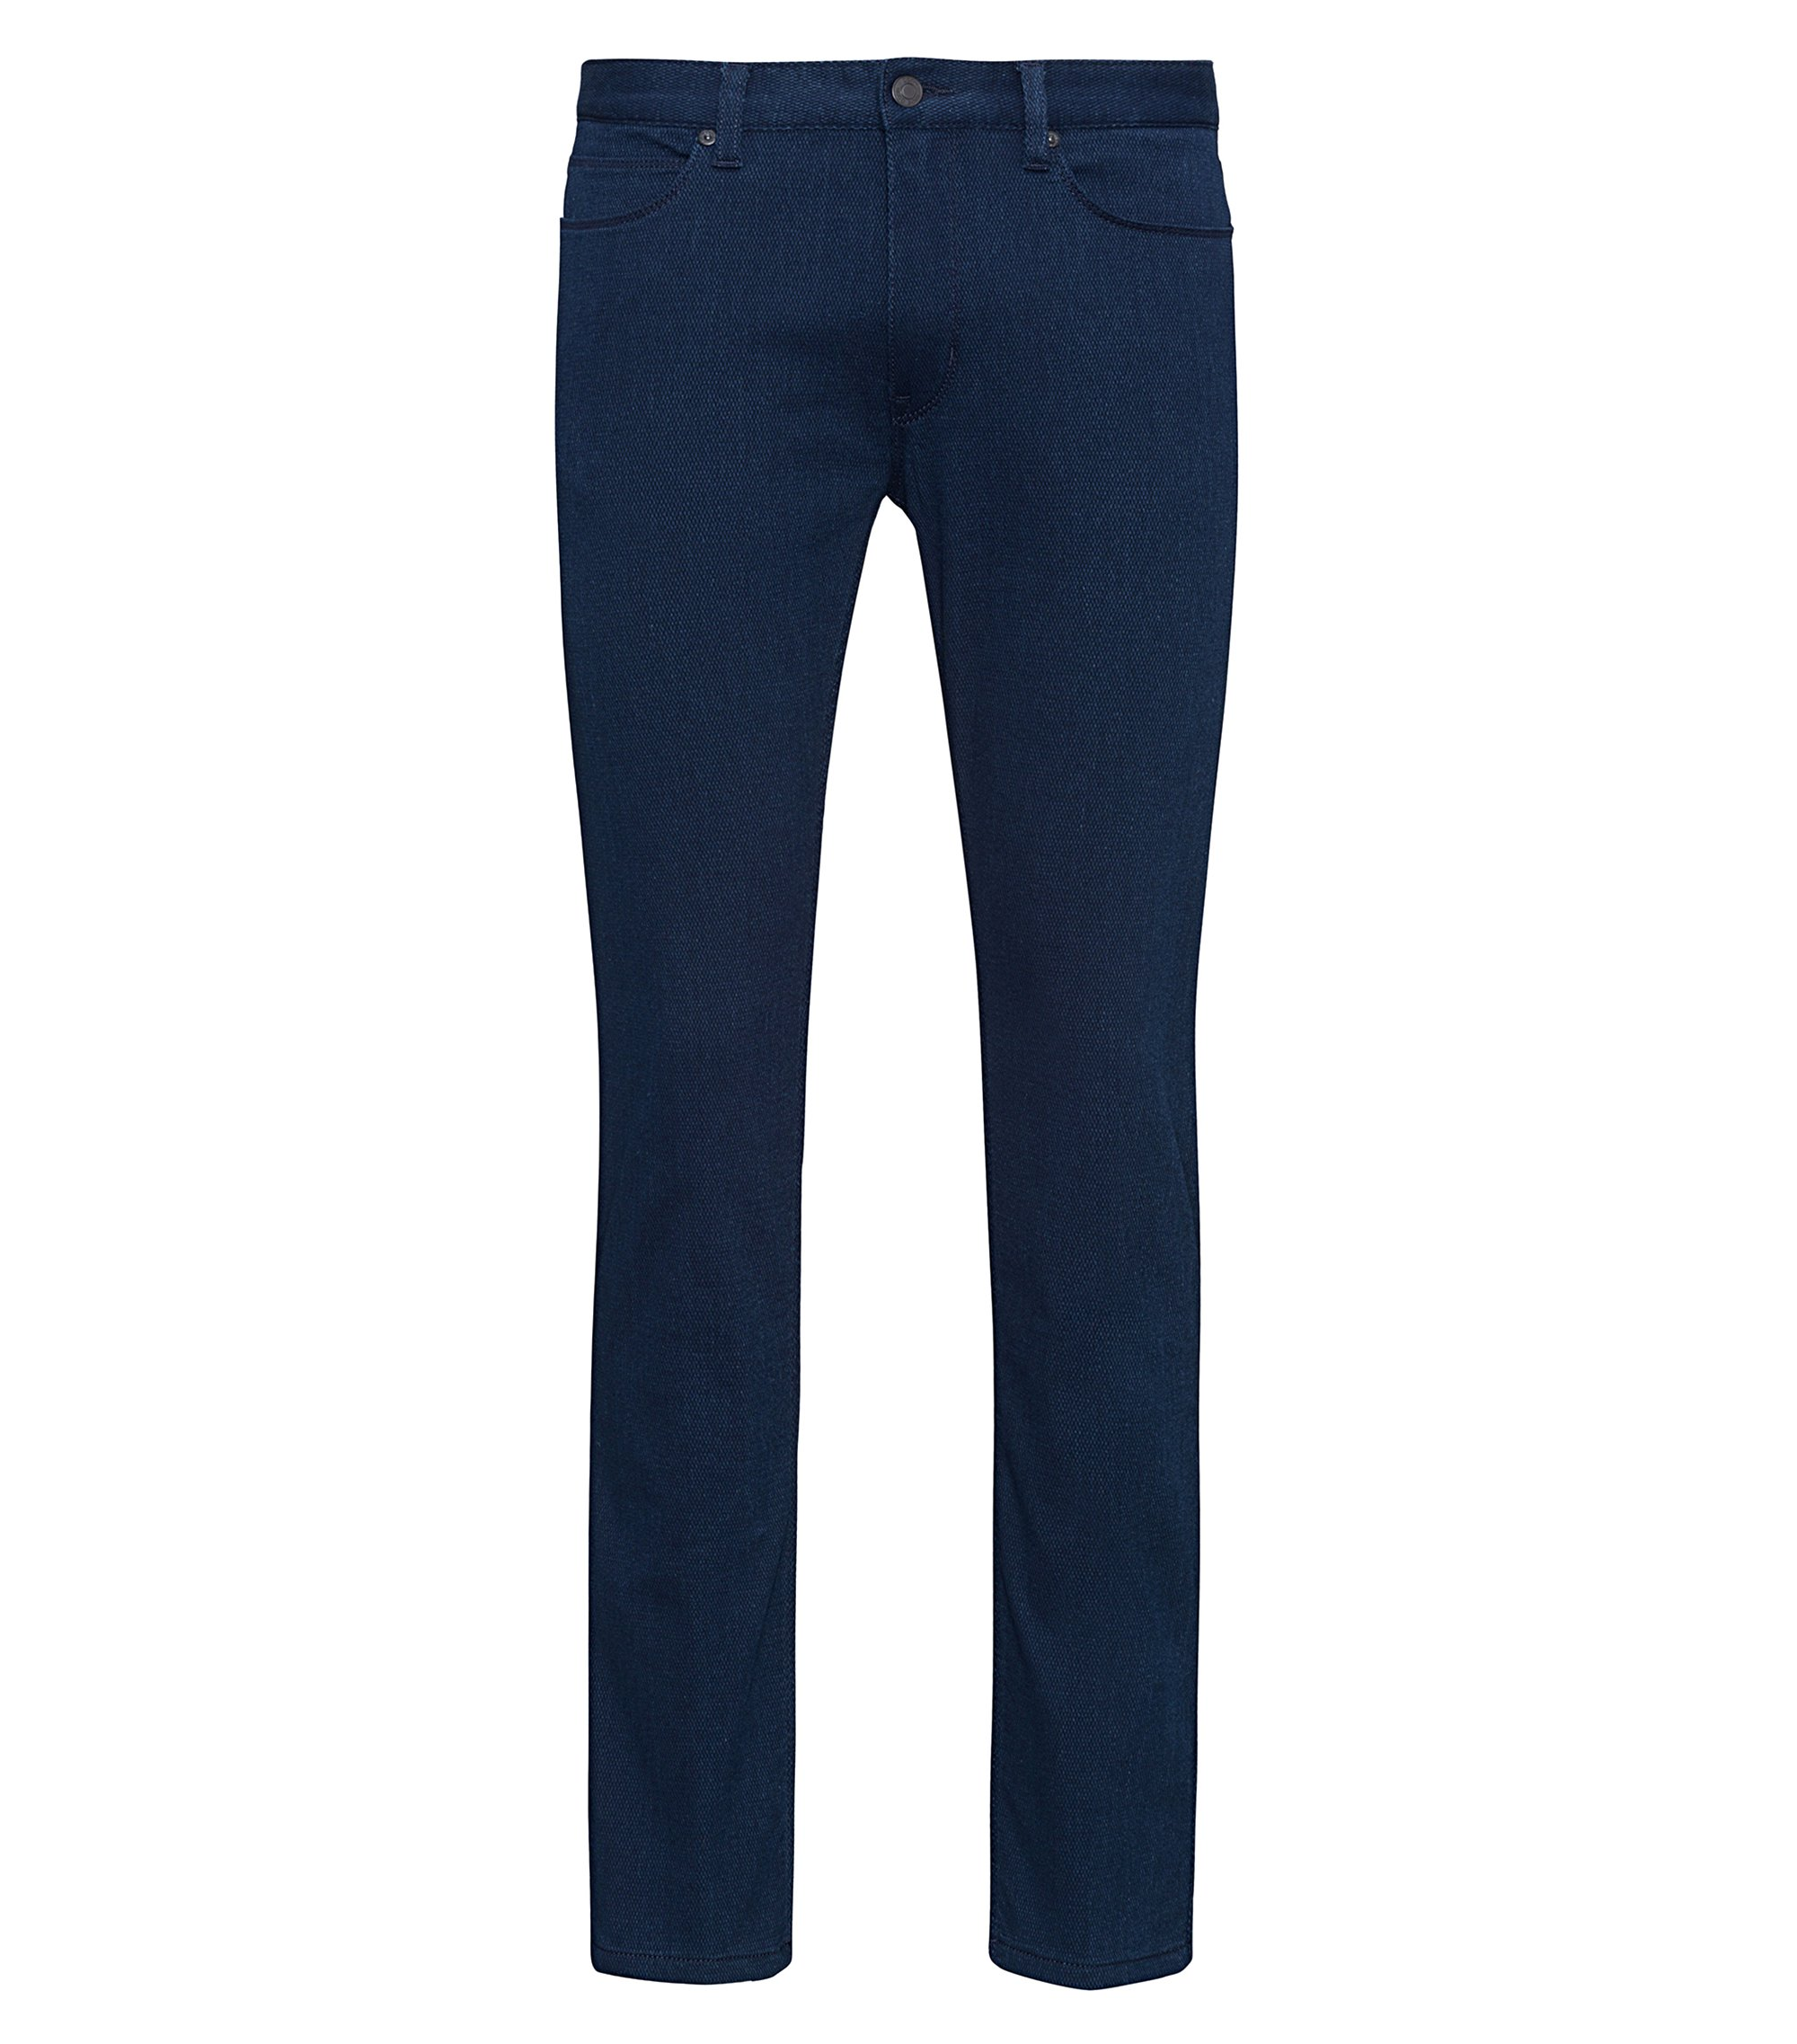 Stretch Cotton Jeans, Skinny Fit | Hugo 734, Dark Blue